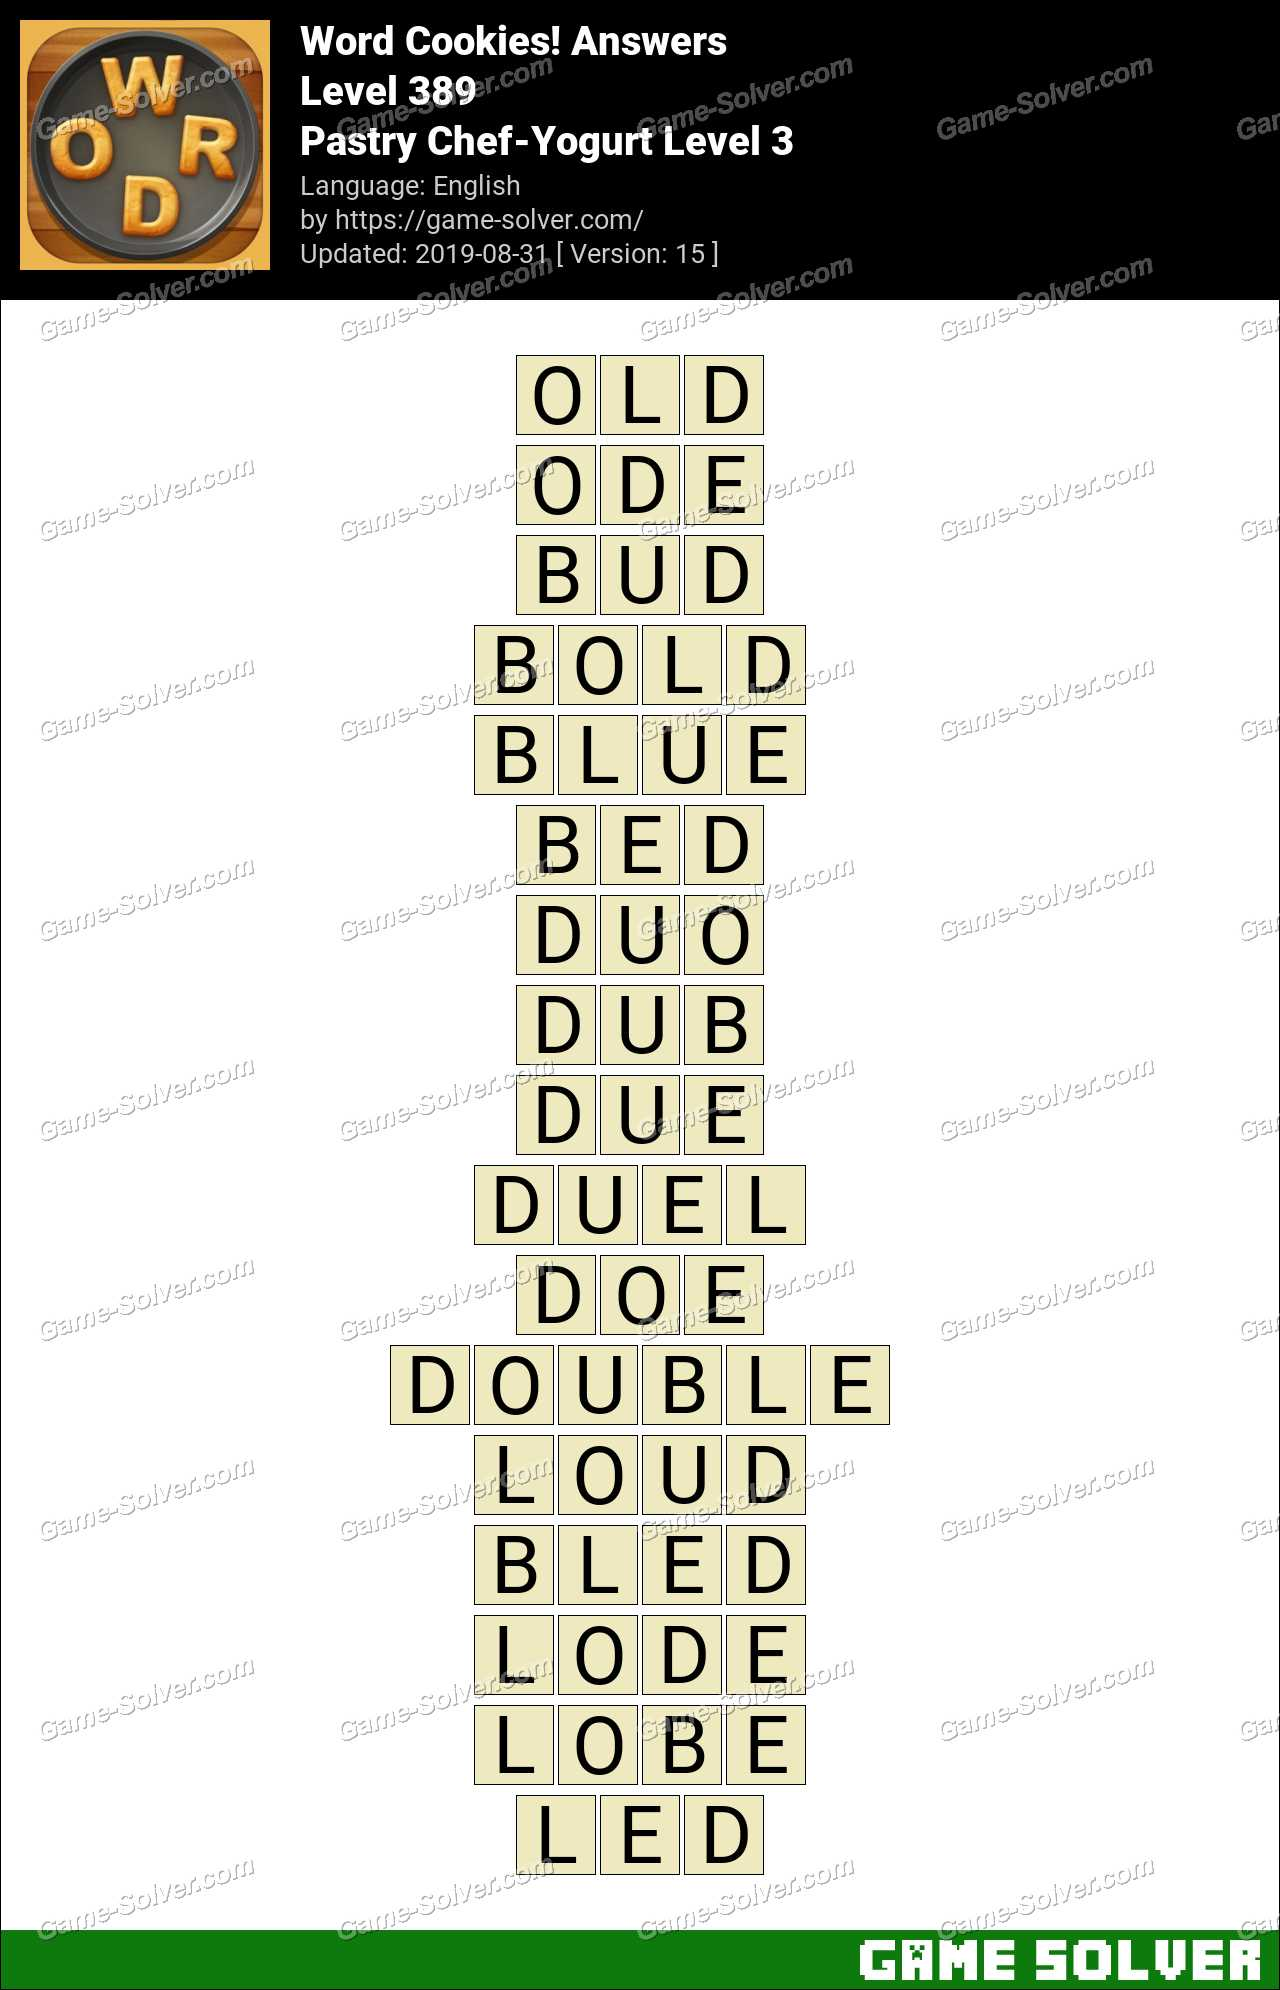 Word Cookies Pastry Chef-Yogurt Level 3 Answers